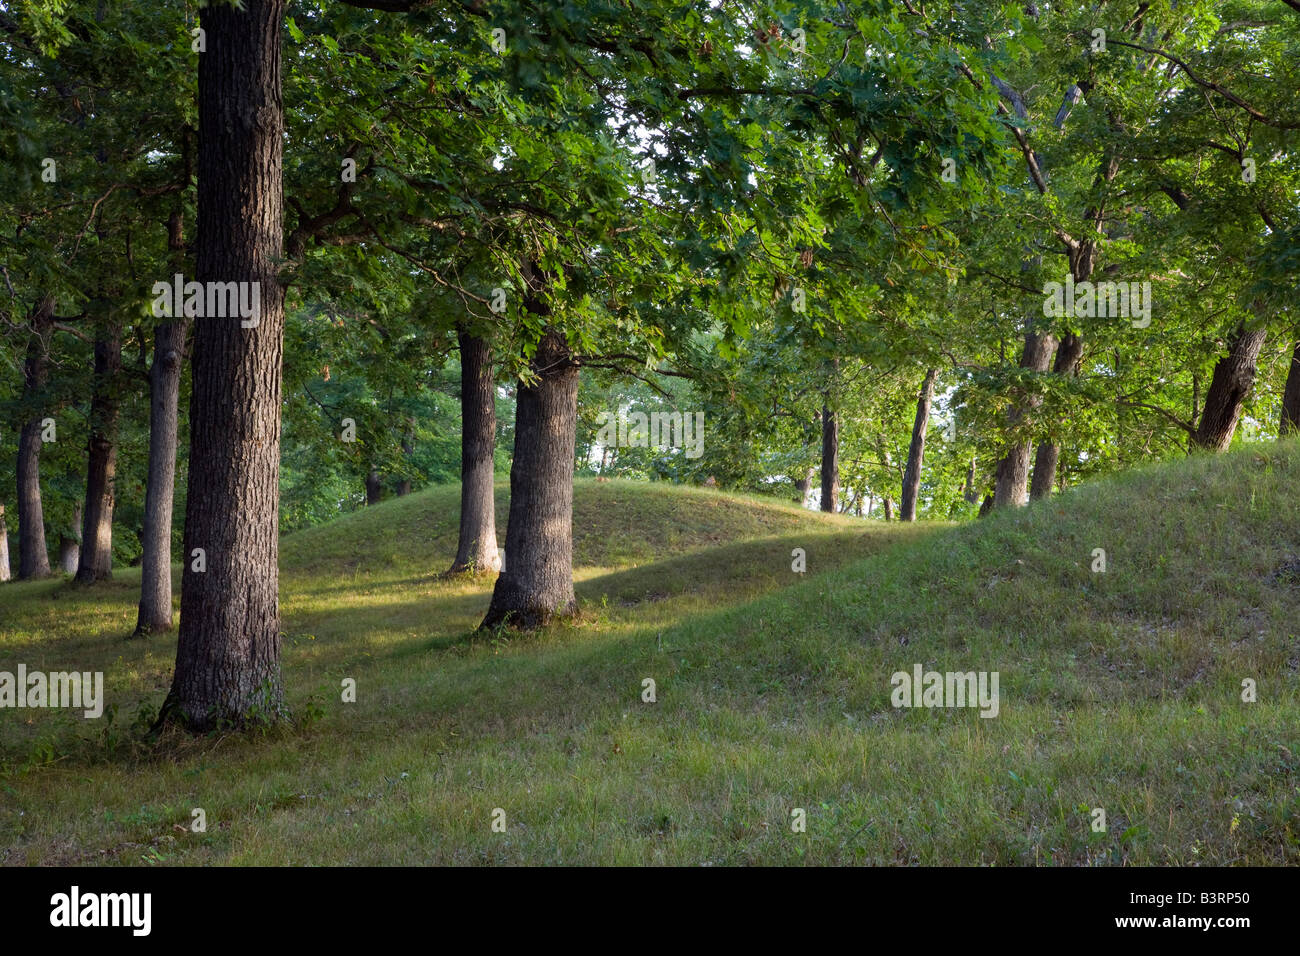 ancient Native American burial mounds, Effigy Mounds